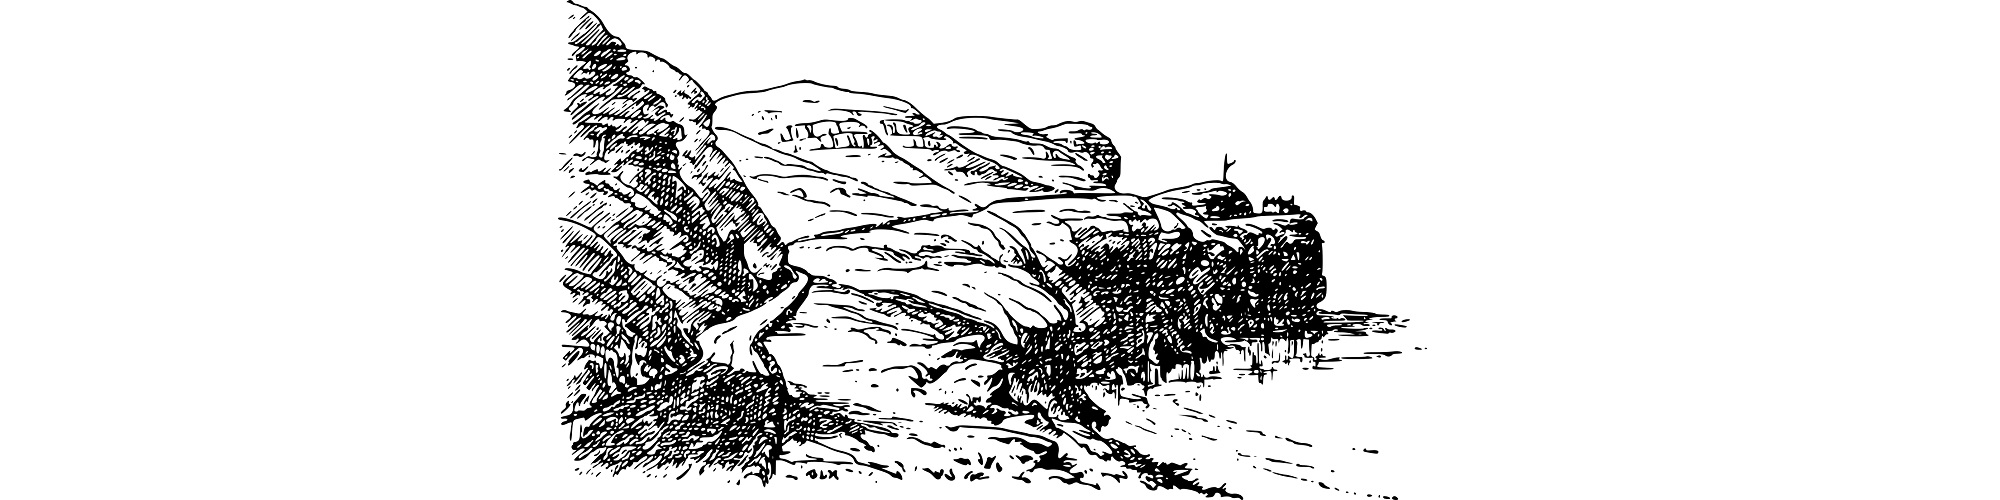 """Illustration of cliffs and sea - """"Ludicrous"""" short story"""